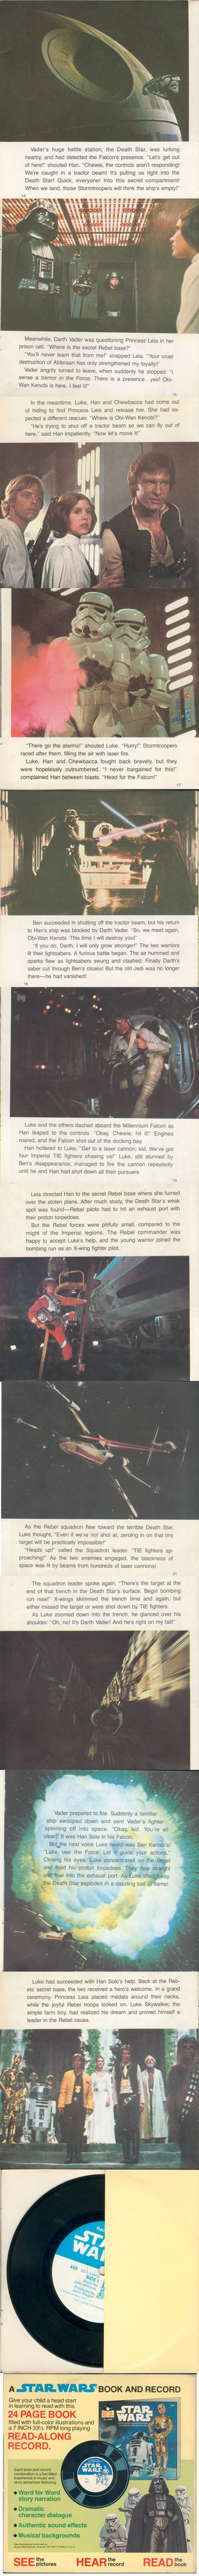 star_wars_story_book_part_2